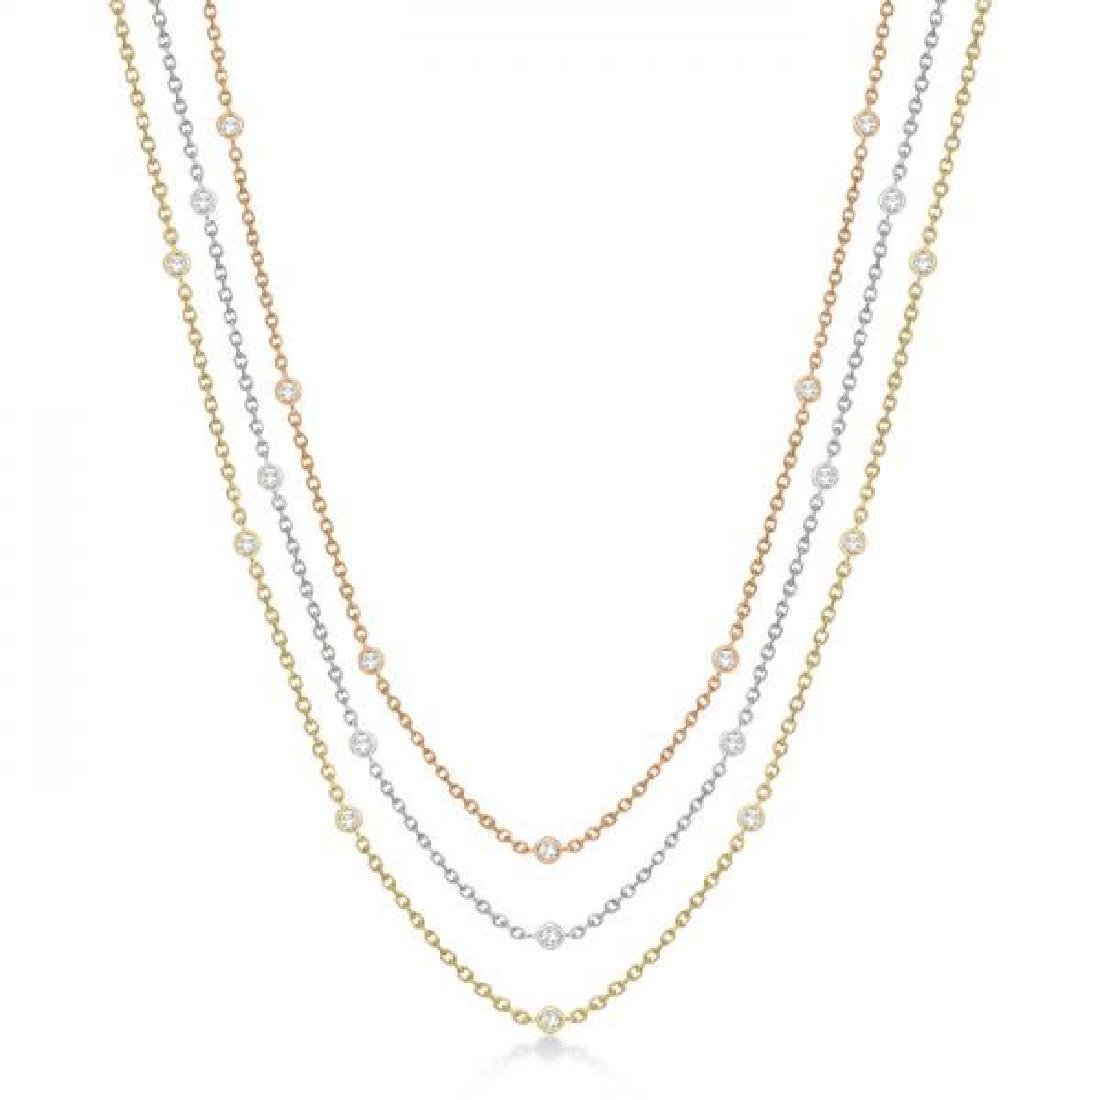 Three-Strand Diamond Station Necklace in 14k Three-Tone